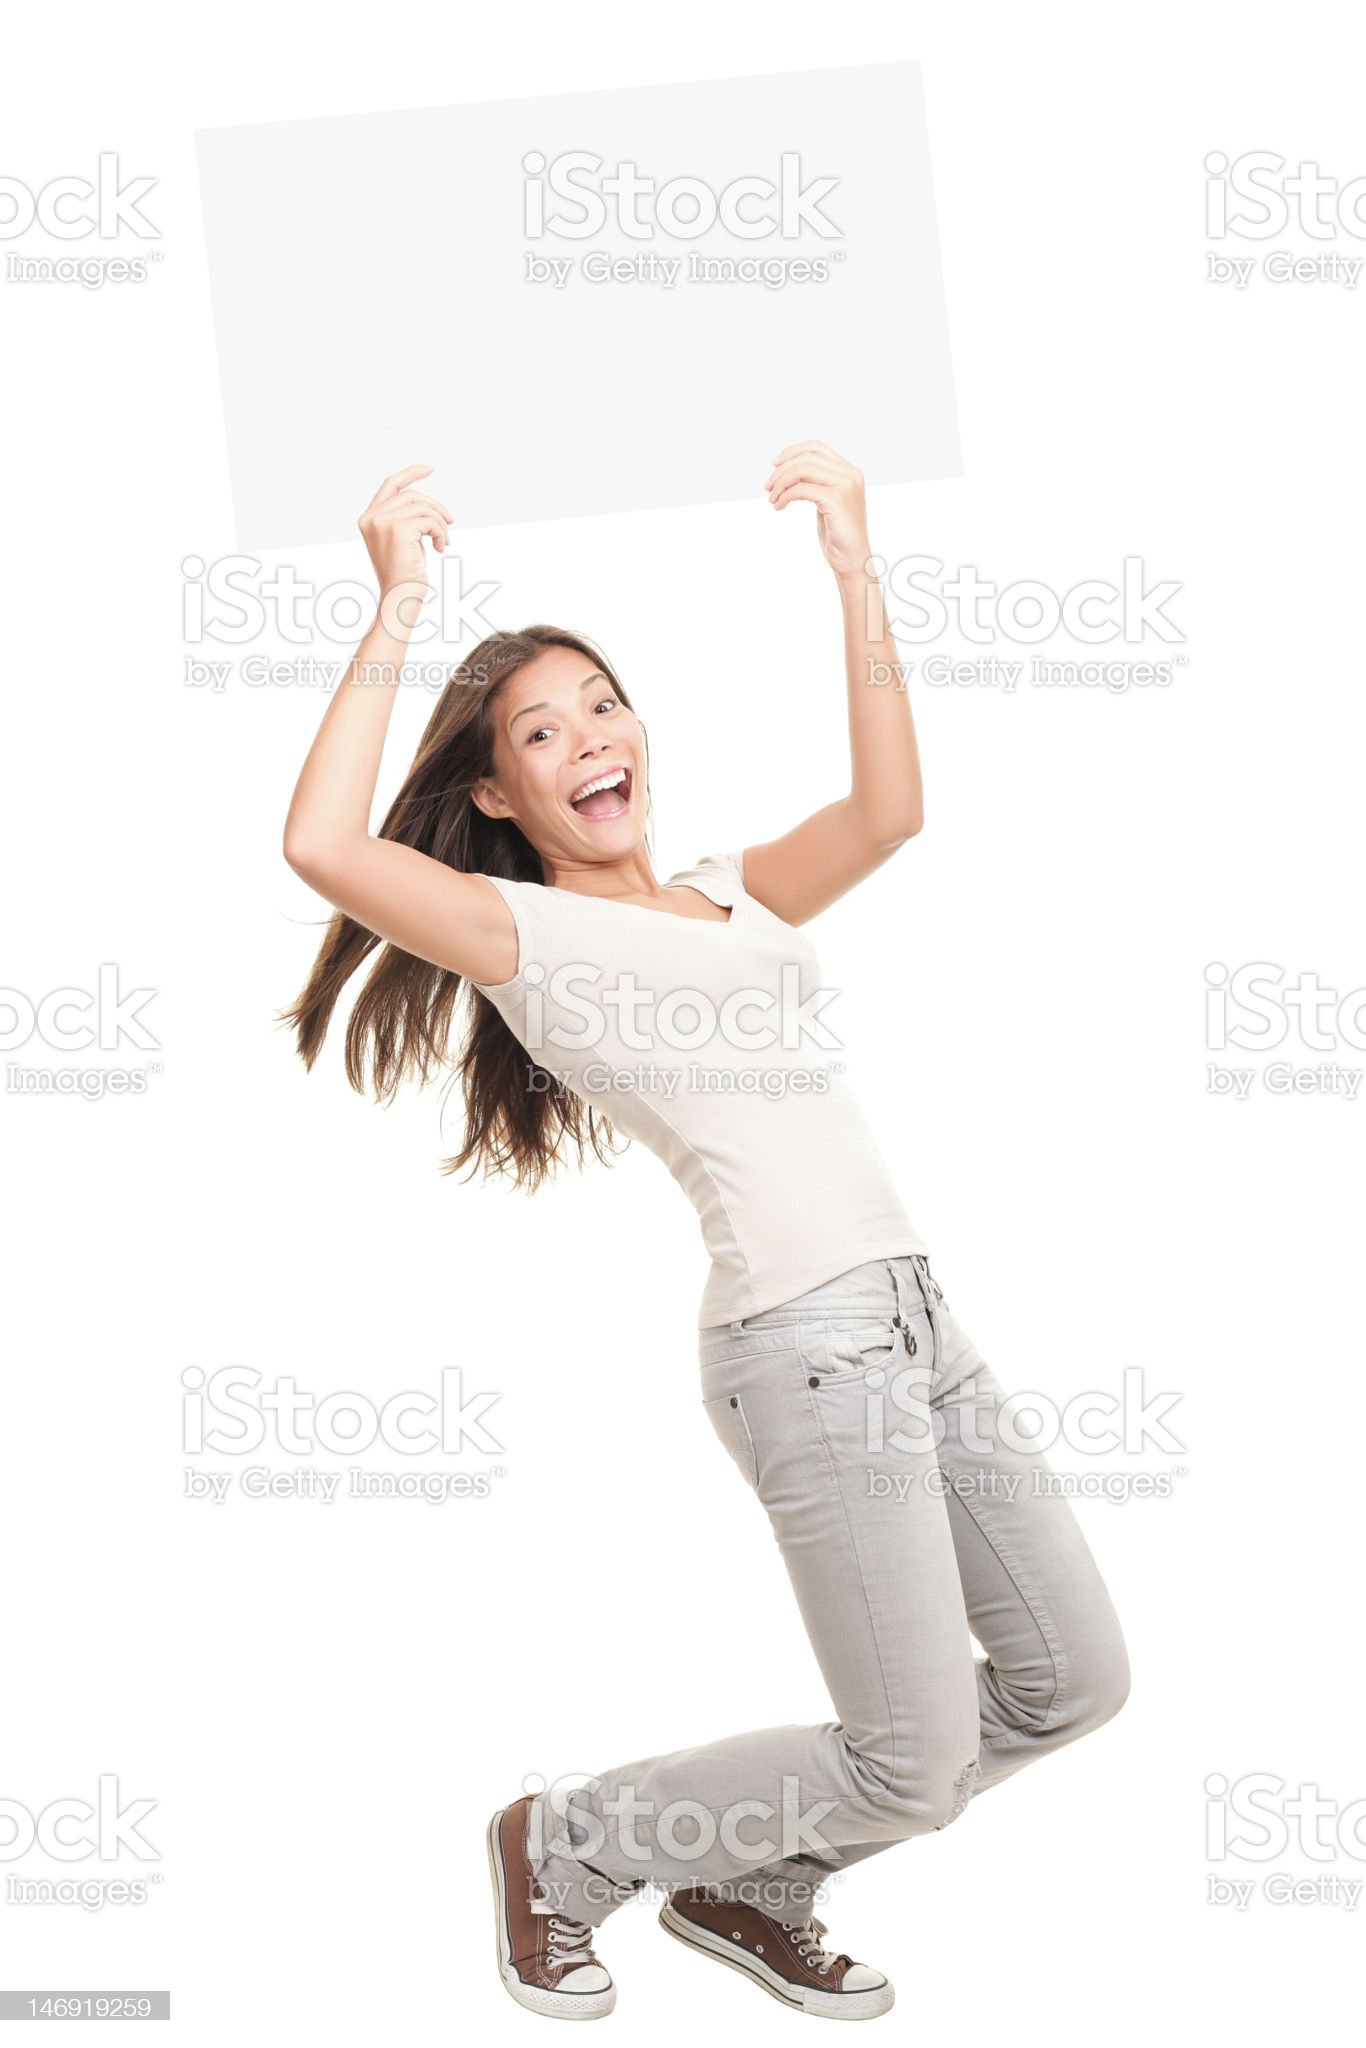 Blank poster sign woman excited royalty-free stock photo